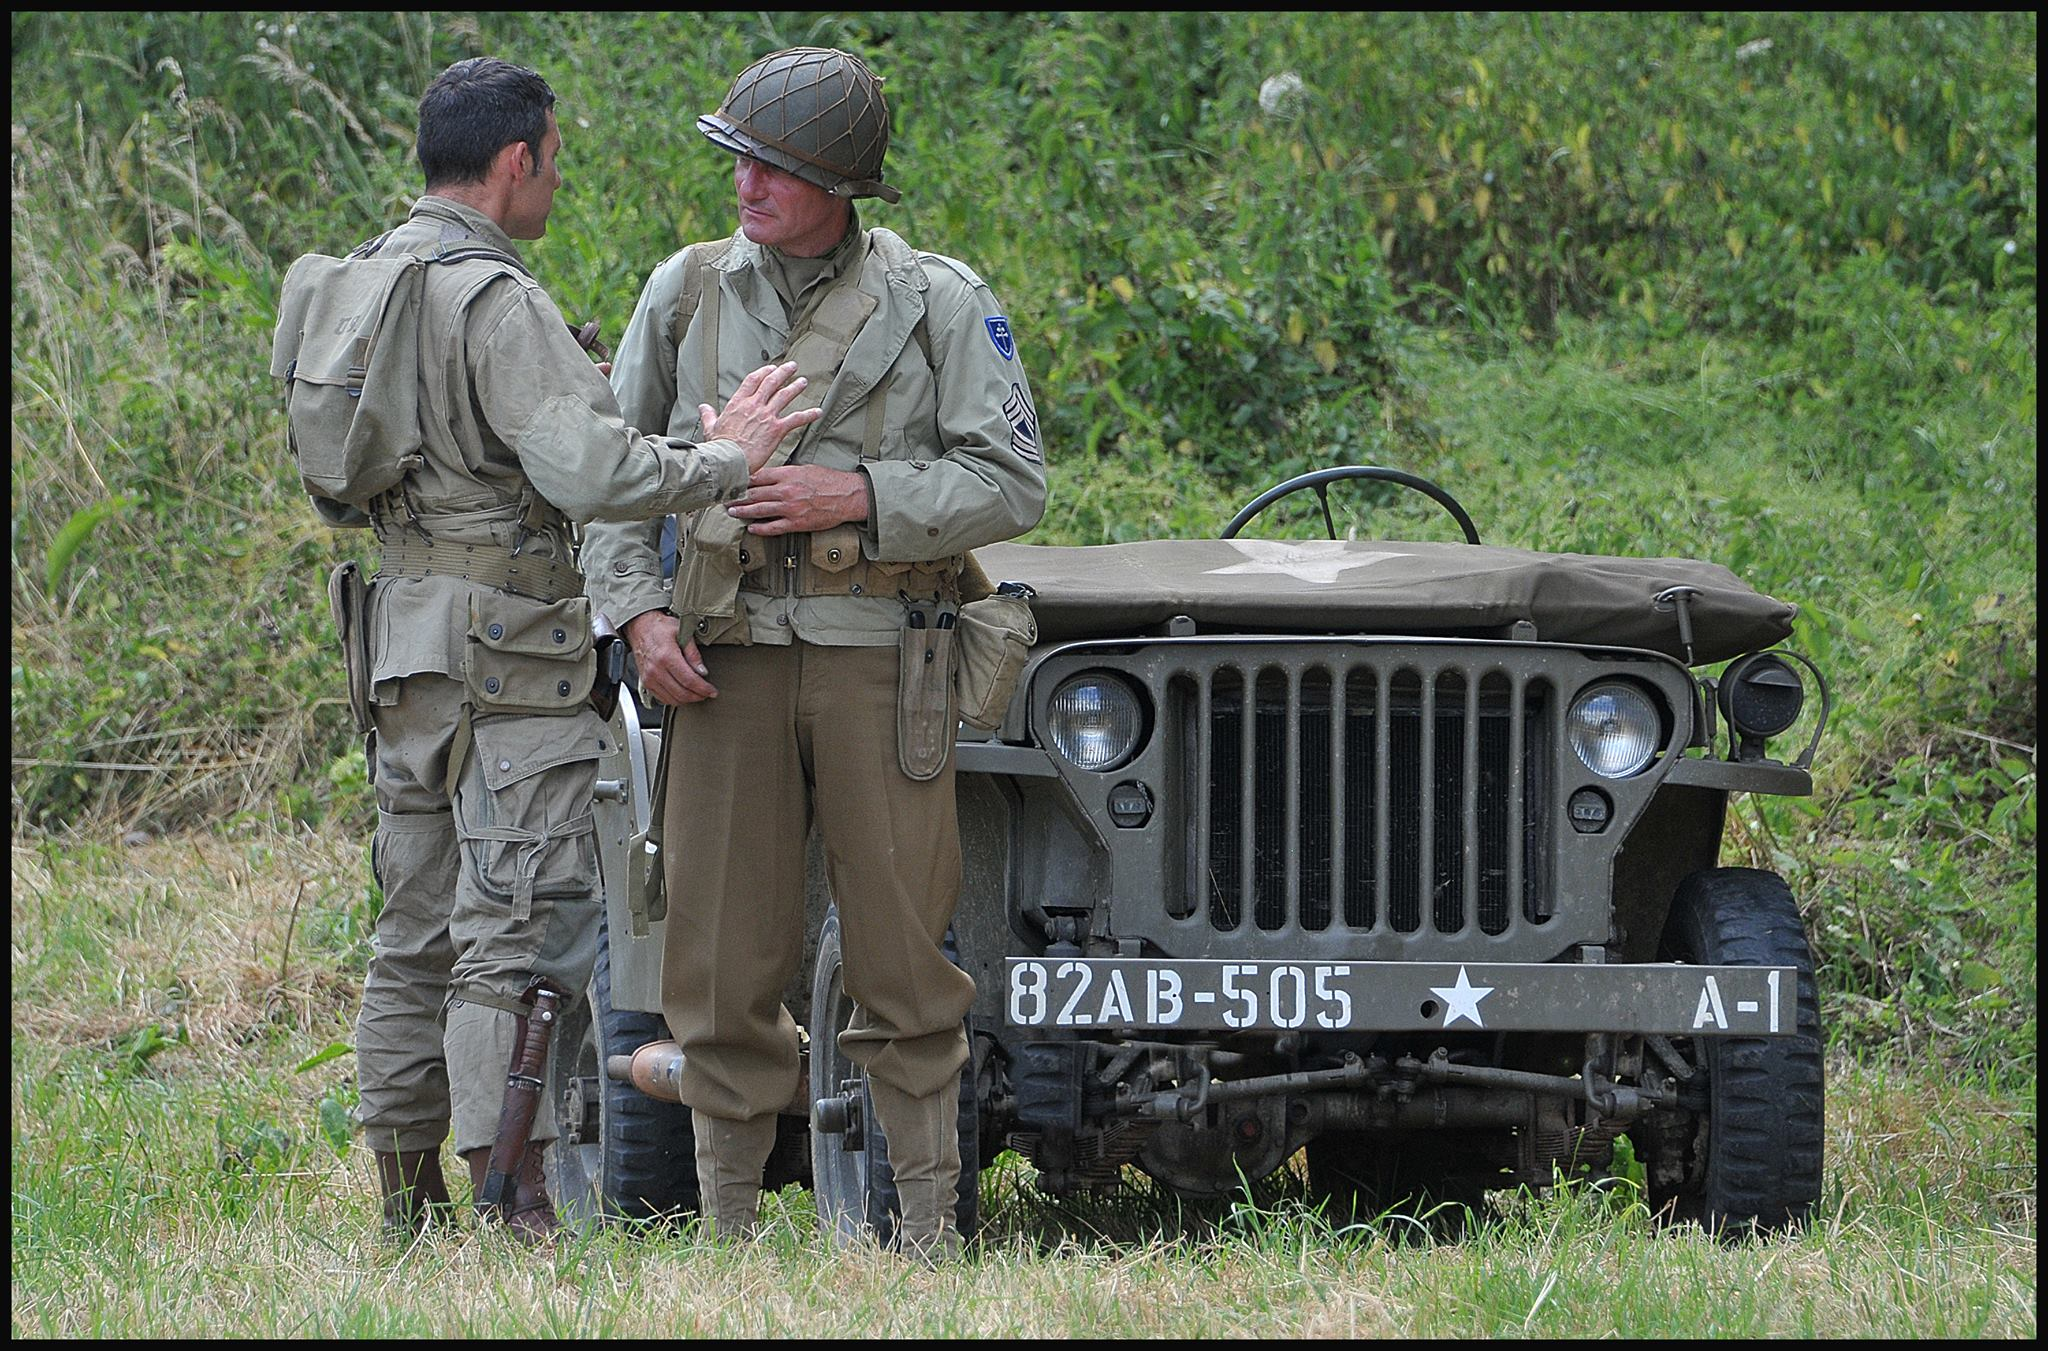 79TH MEMORY GROUP jeep